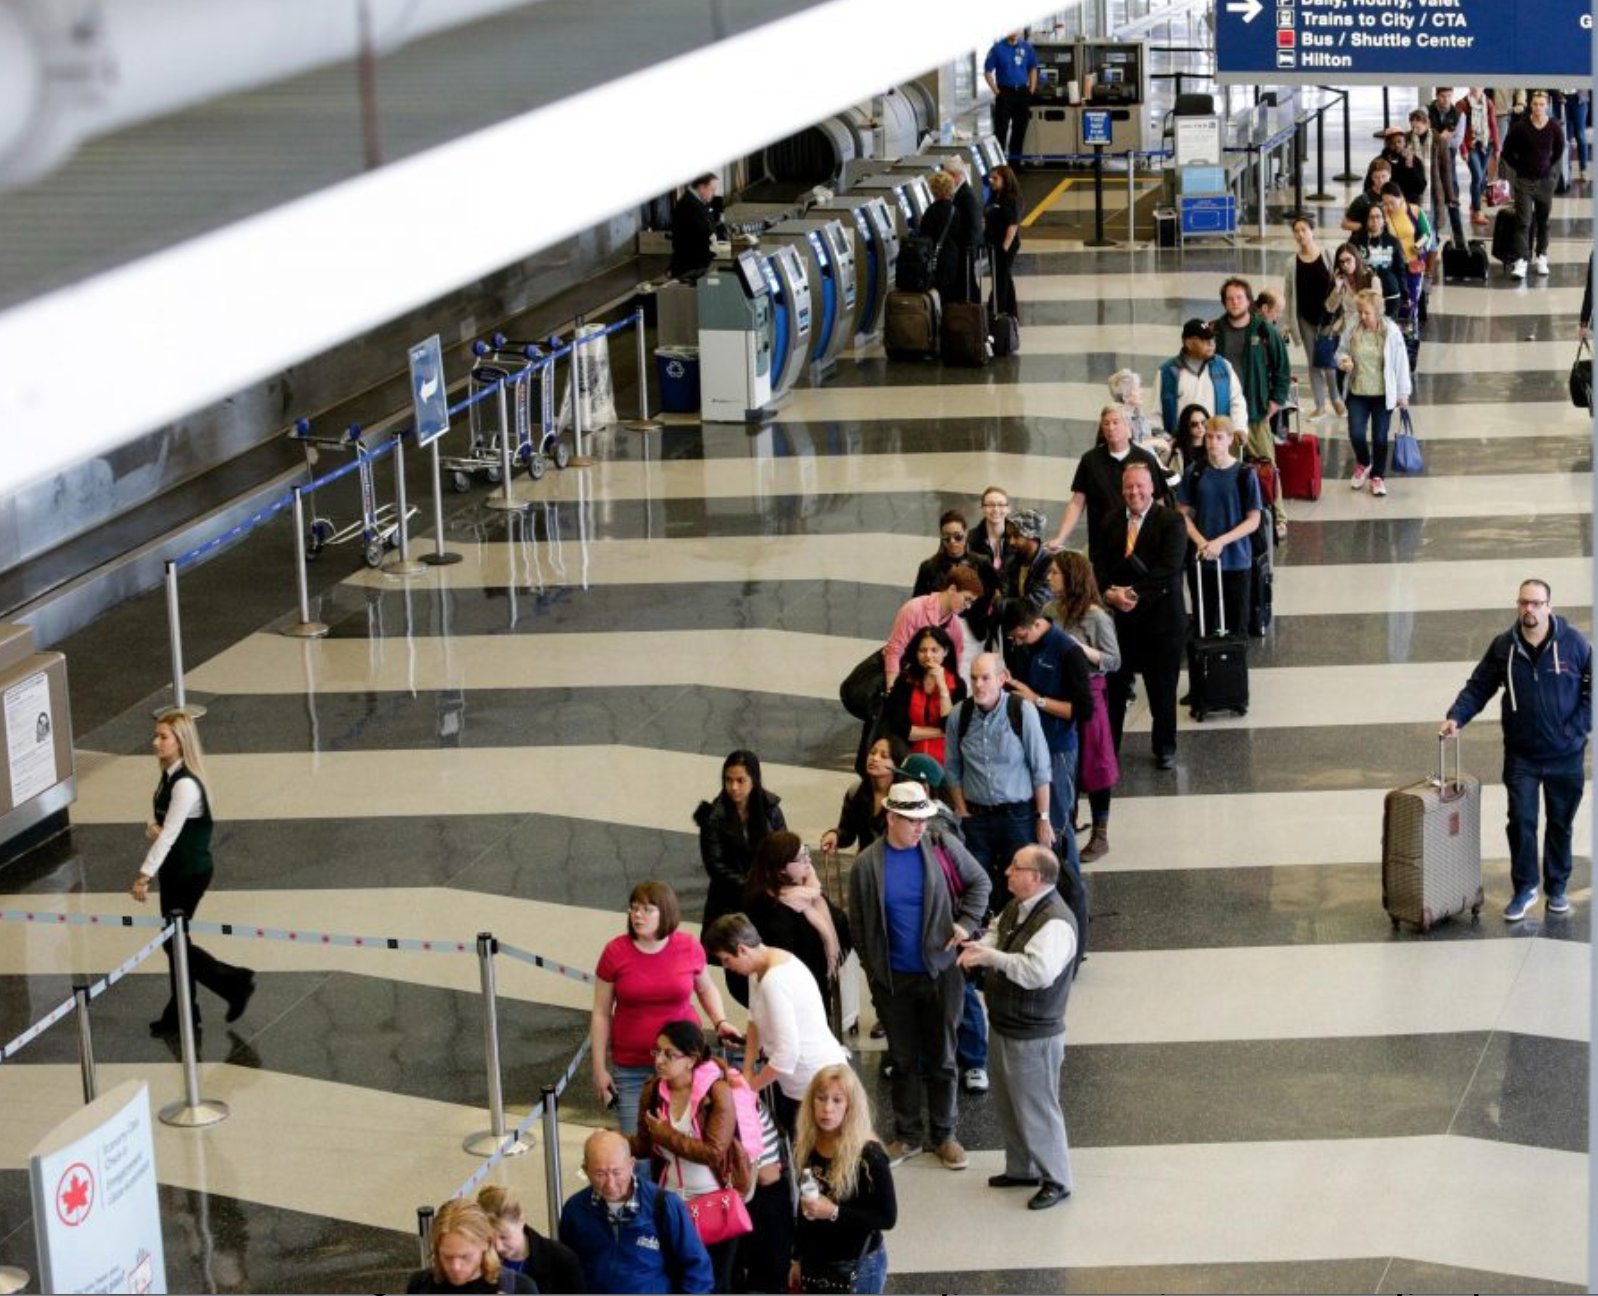 This is your future if you don't arrive to the airport early.